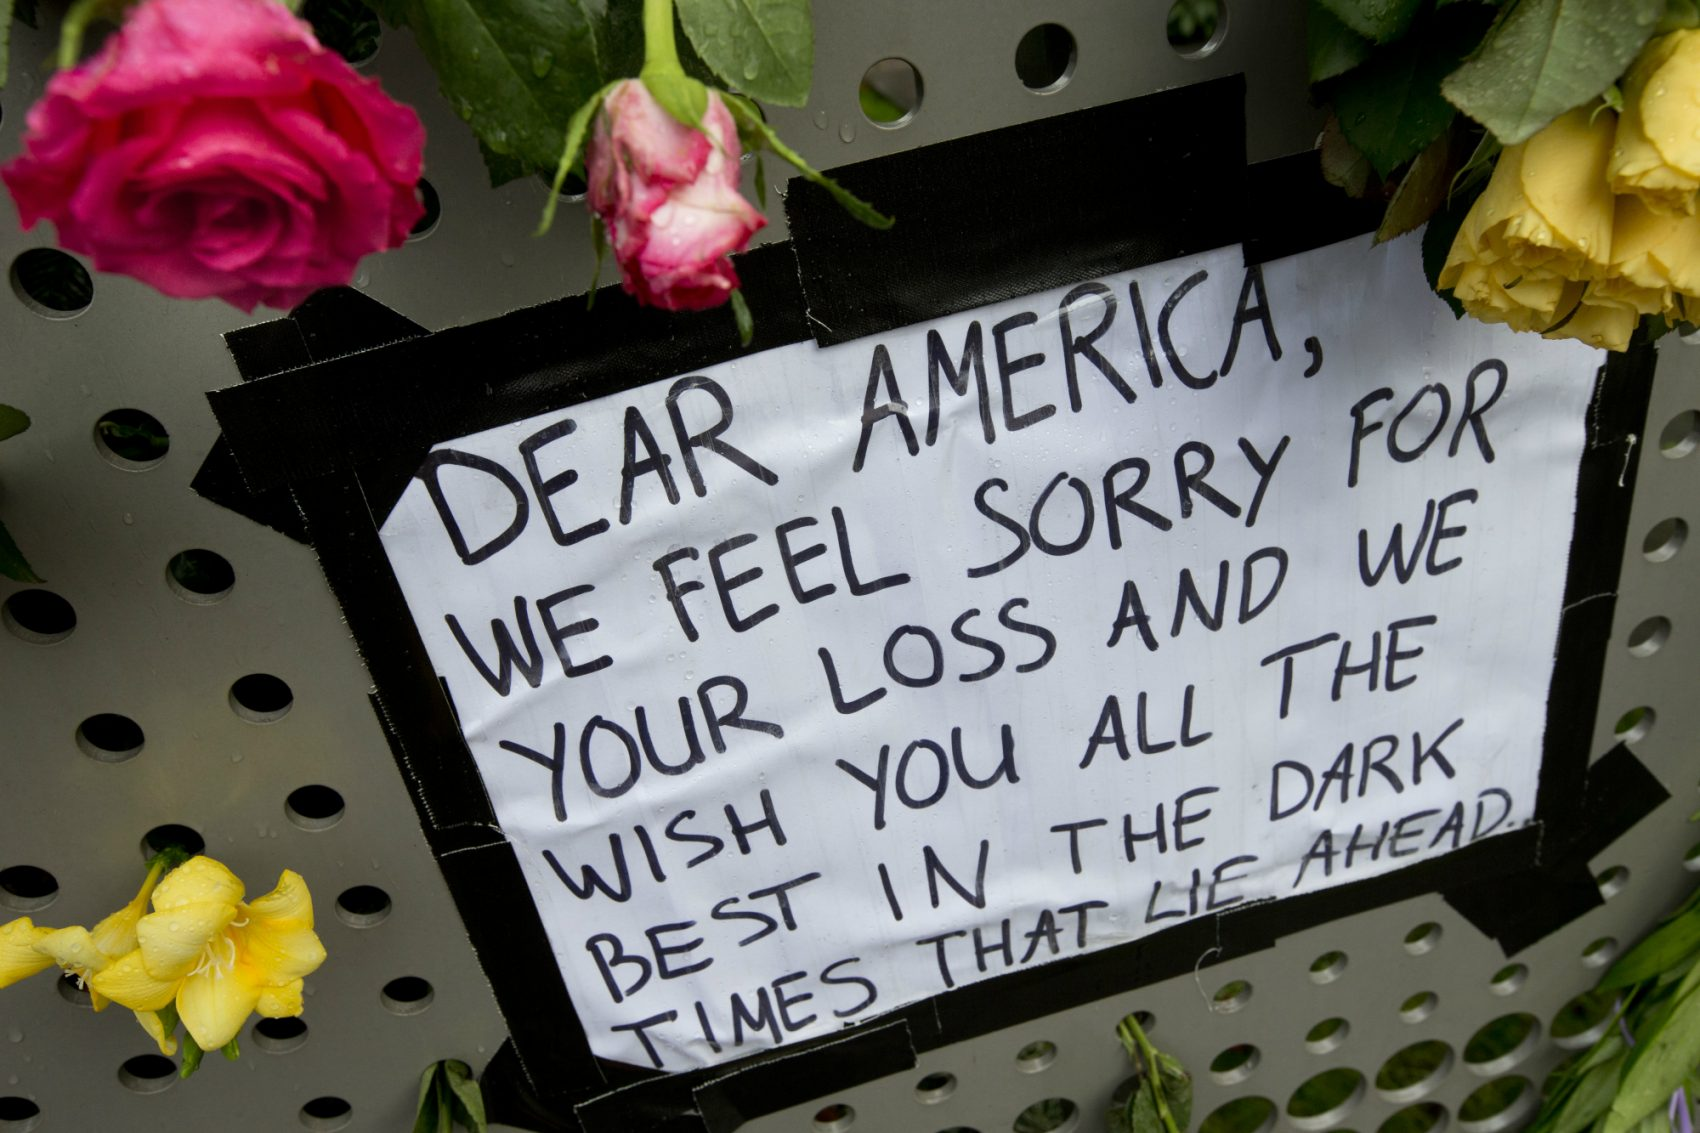 We all want to be counted among the popular majority, writes Ruth Allen, because our vote was for U.S. engagement with the world. Pictured: Raindrops sit on a rose next to a sign put up in reaction to the outcome of the U.S. presidential election at the U.S. consulate in Amsterdam, Netherlands, Thursday, Nov. 10, 2016. (Peter Dejong/AP)